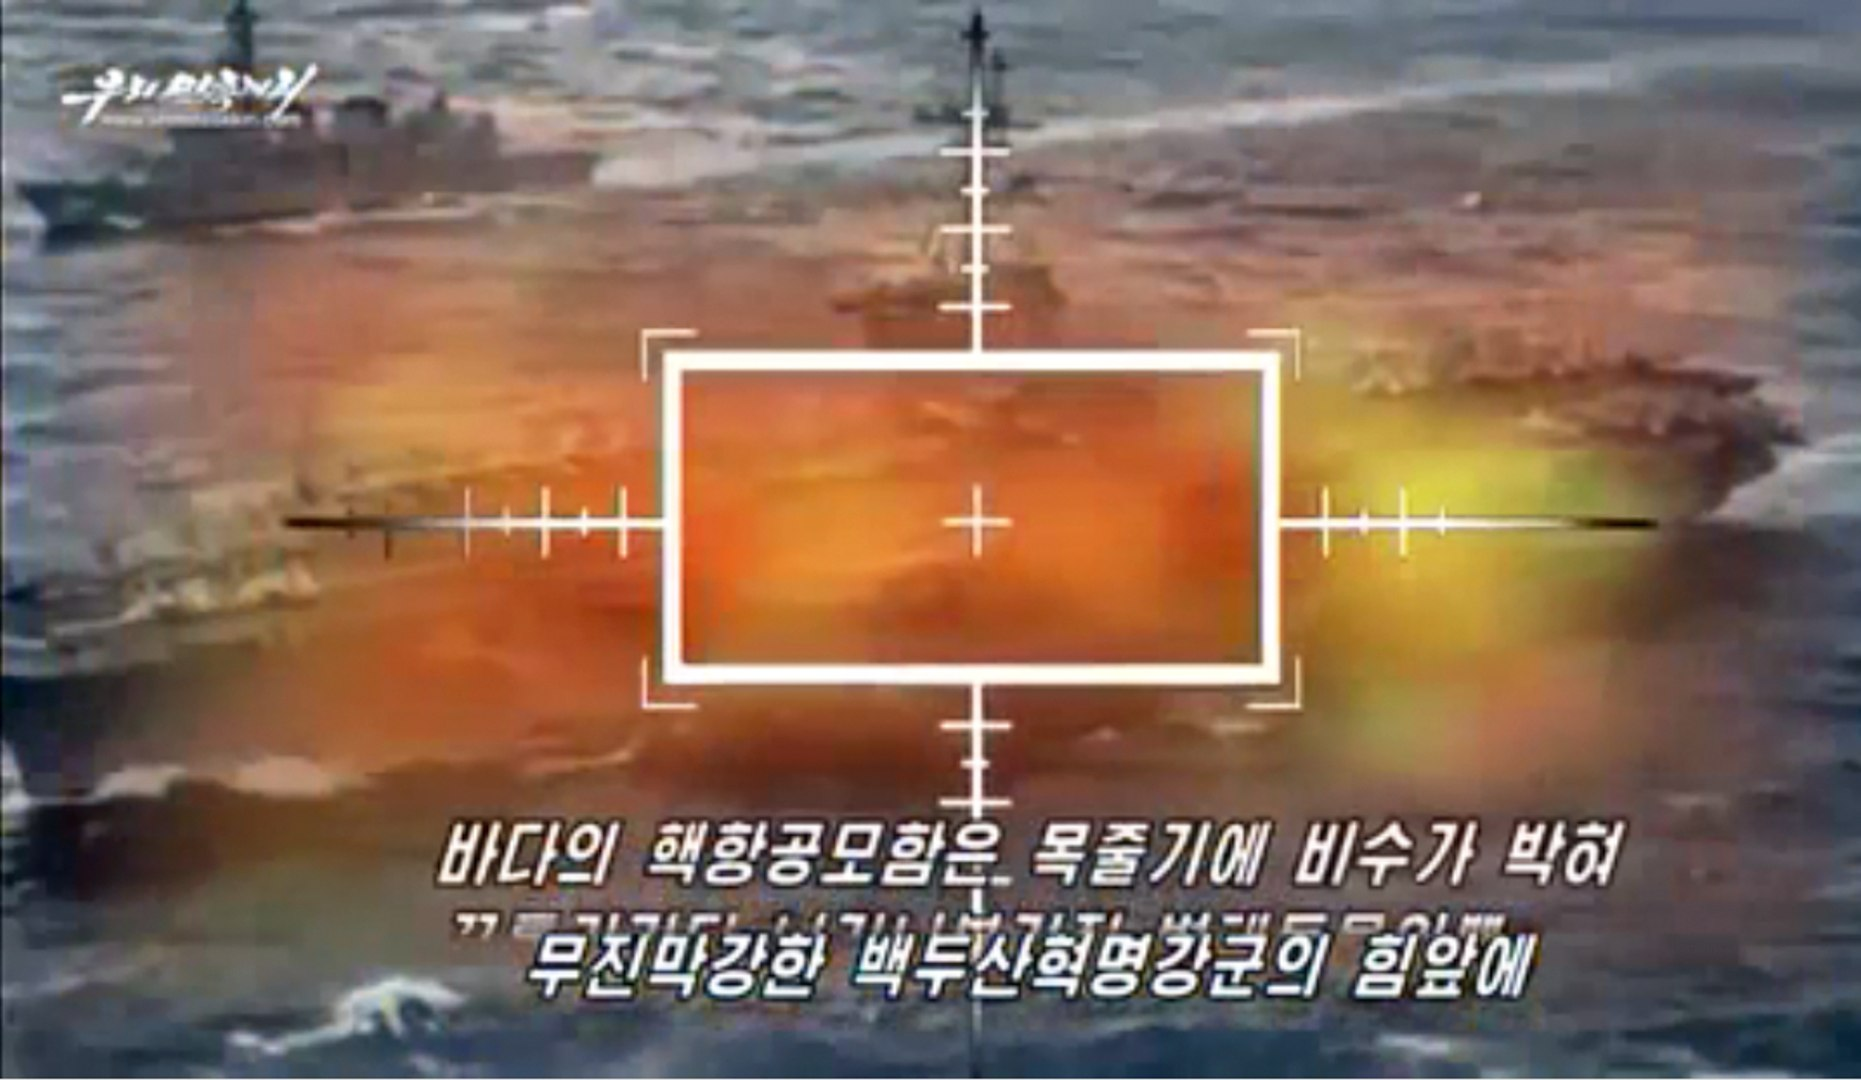 North Korea Propaganda Video US Carrier in Flames